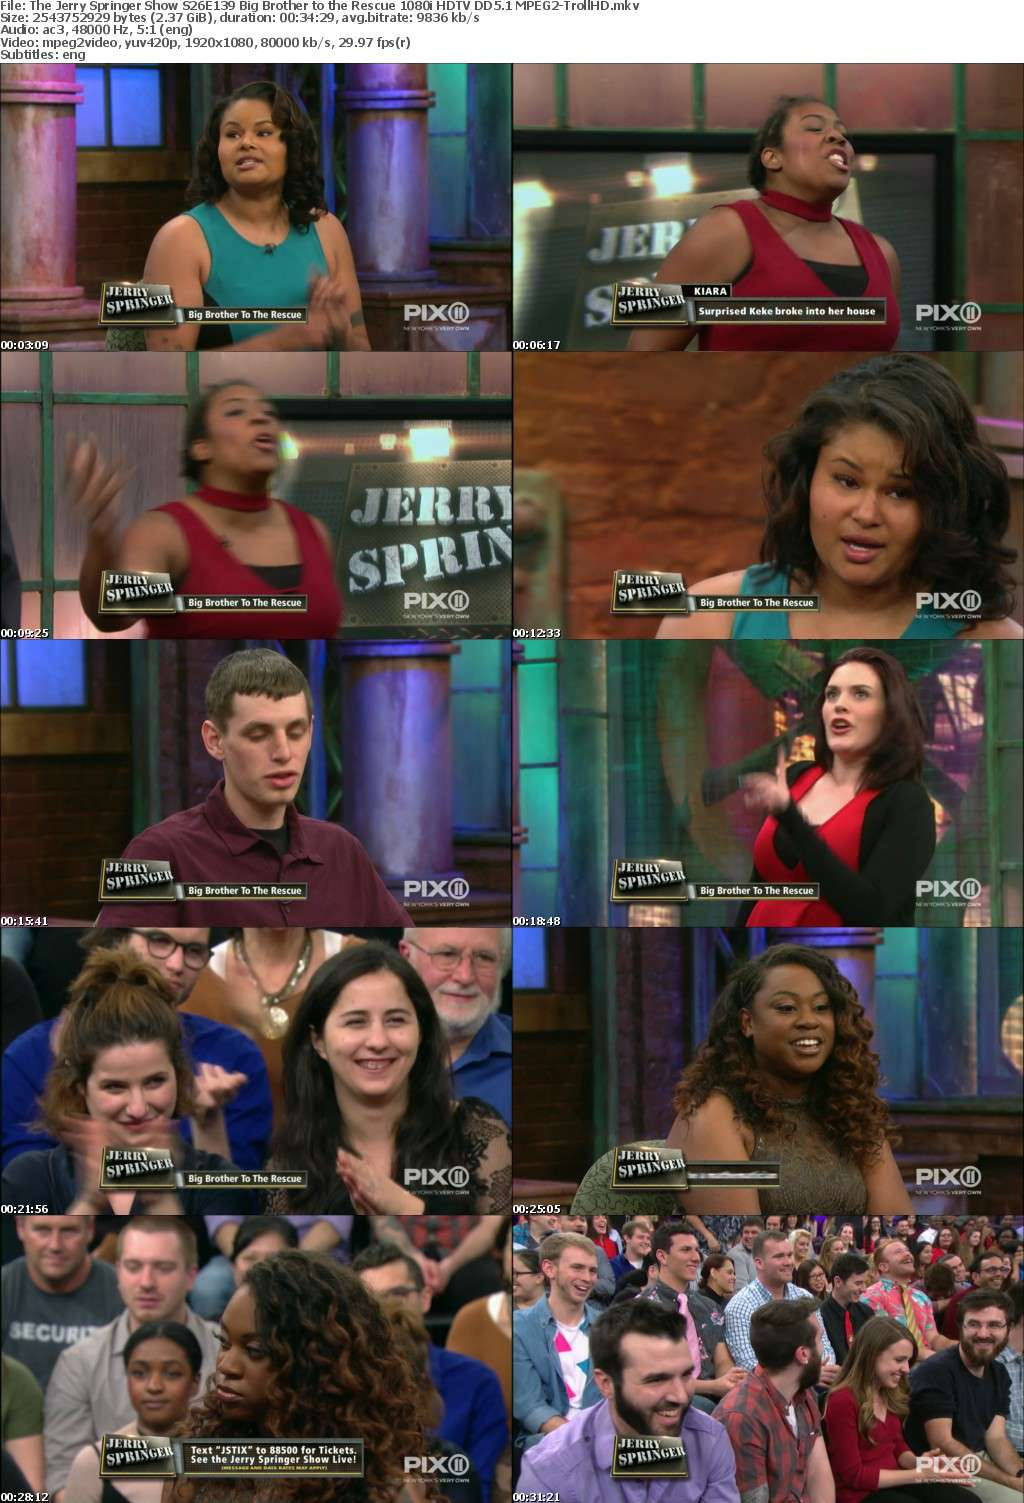 The Jerry Springer Show S26E139 Big Brother to the Rescue 1080i HDTV DD5 1 MPEG2-TrollHD - MPEG2